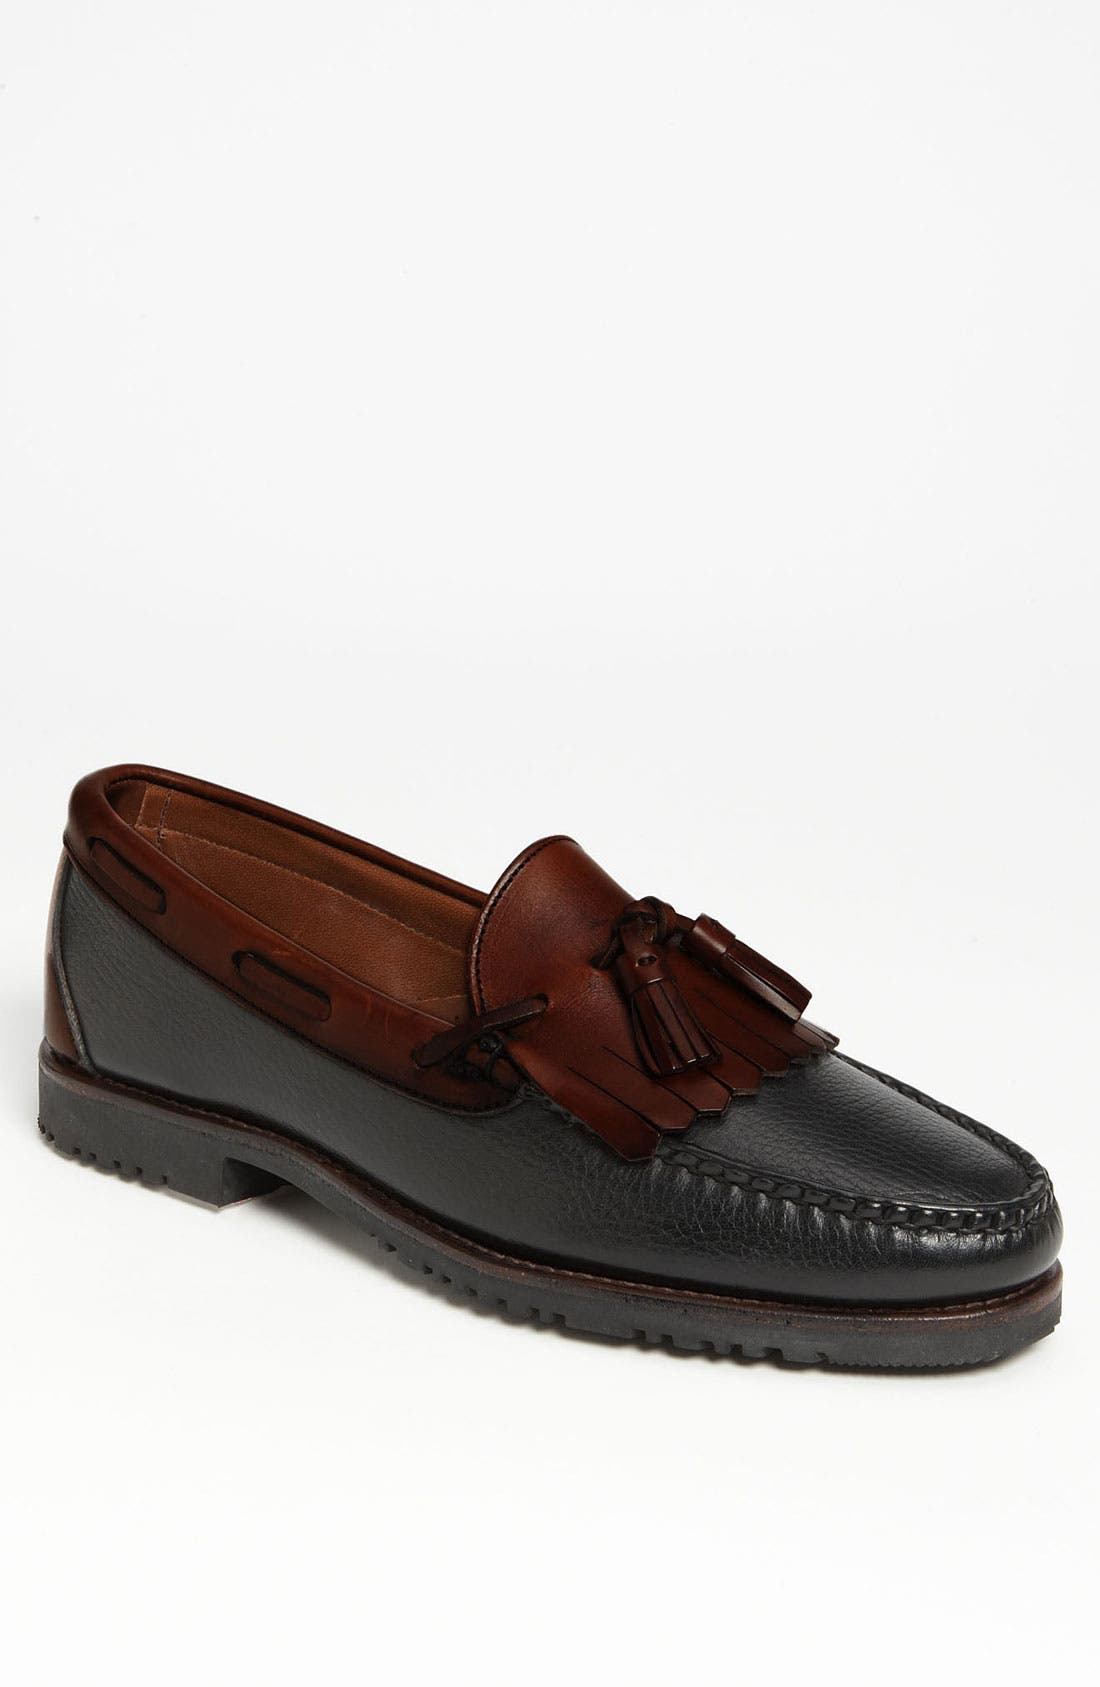 ALLEN EDMONDS 'Nashua' Tassel Loafer, Main, color, BLACK/ BROWN